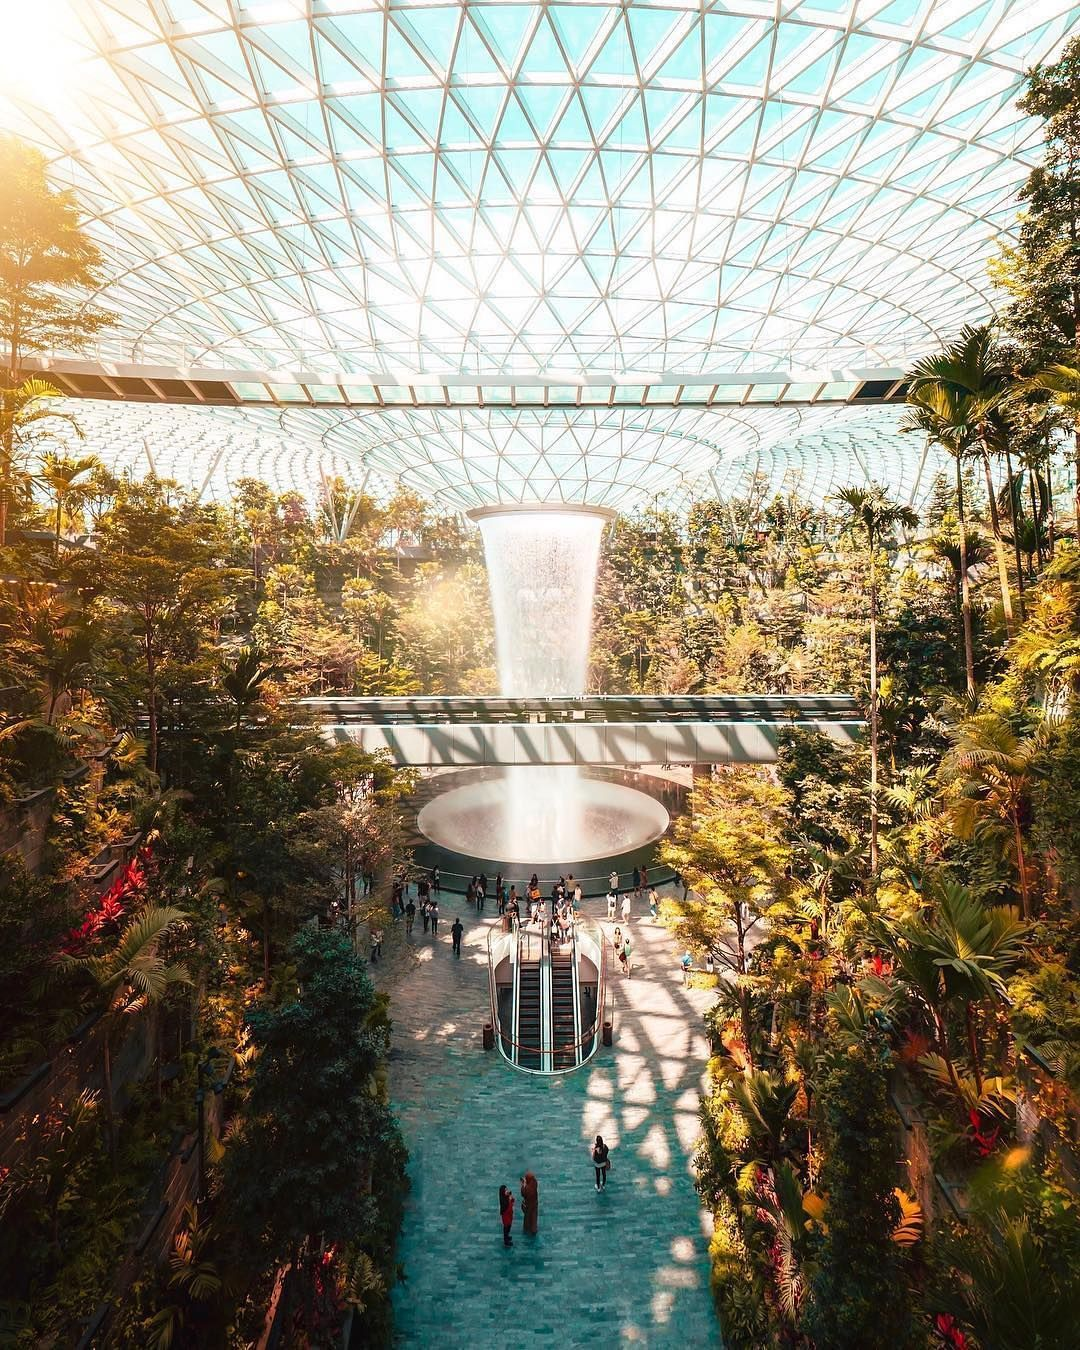 The Rain Vortex At The Center Of The Jewel Changi Airport In